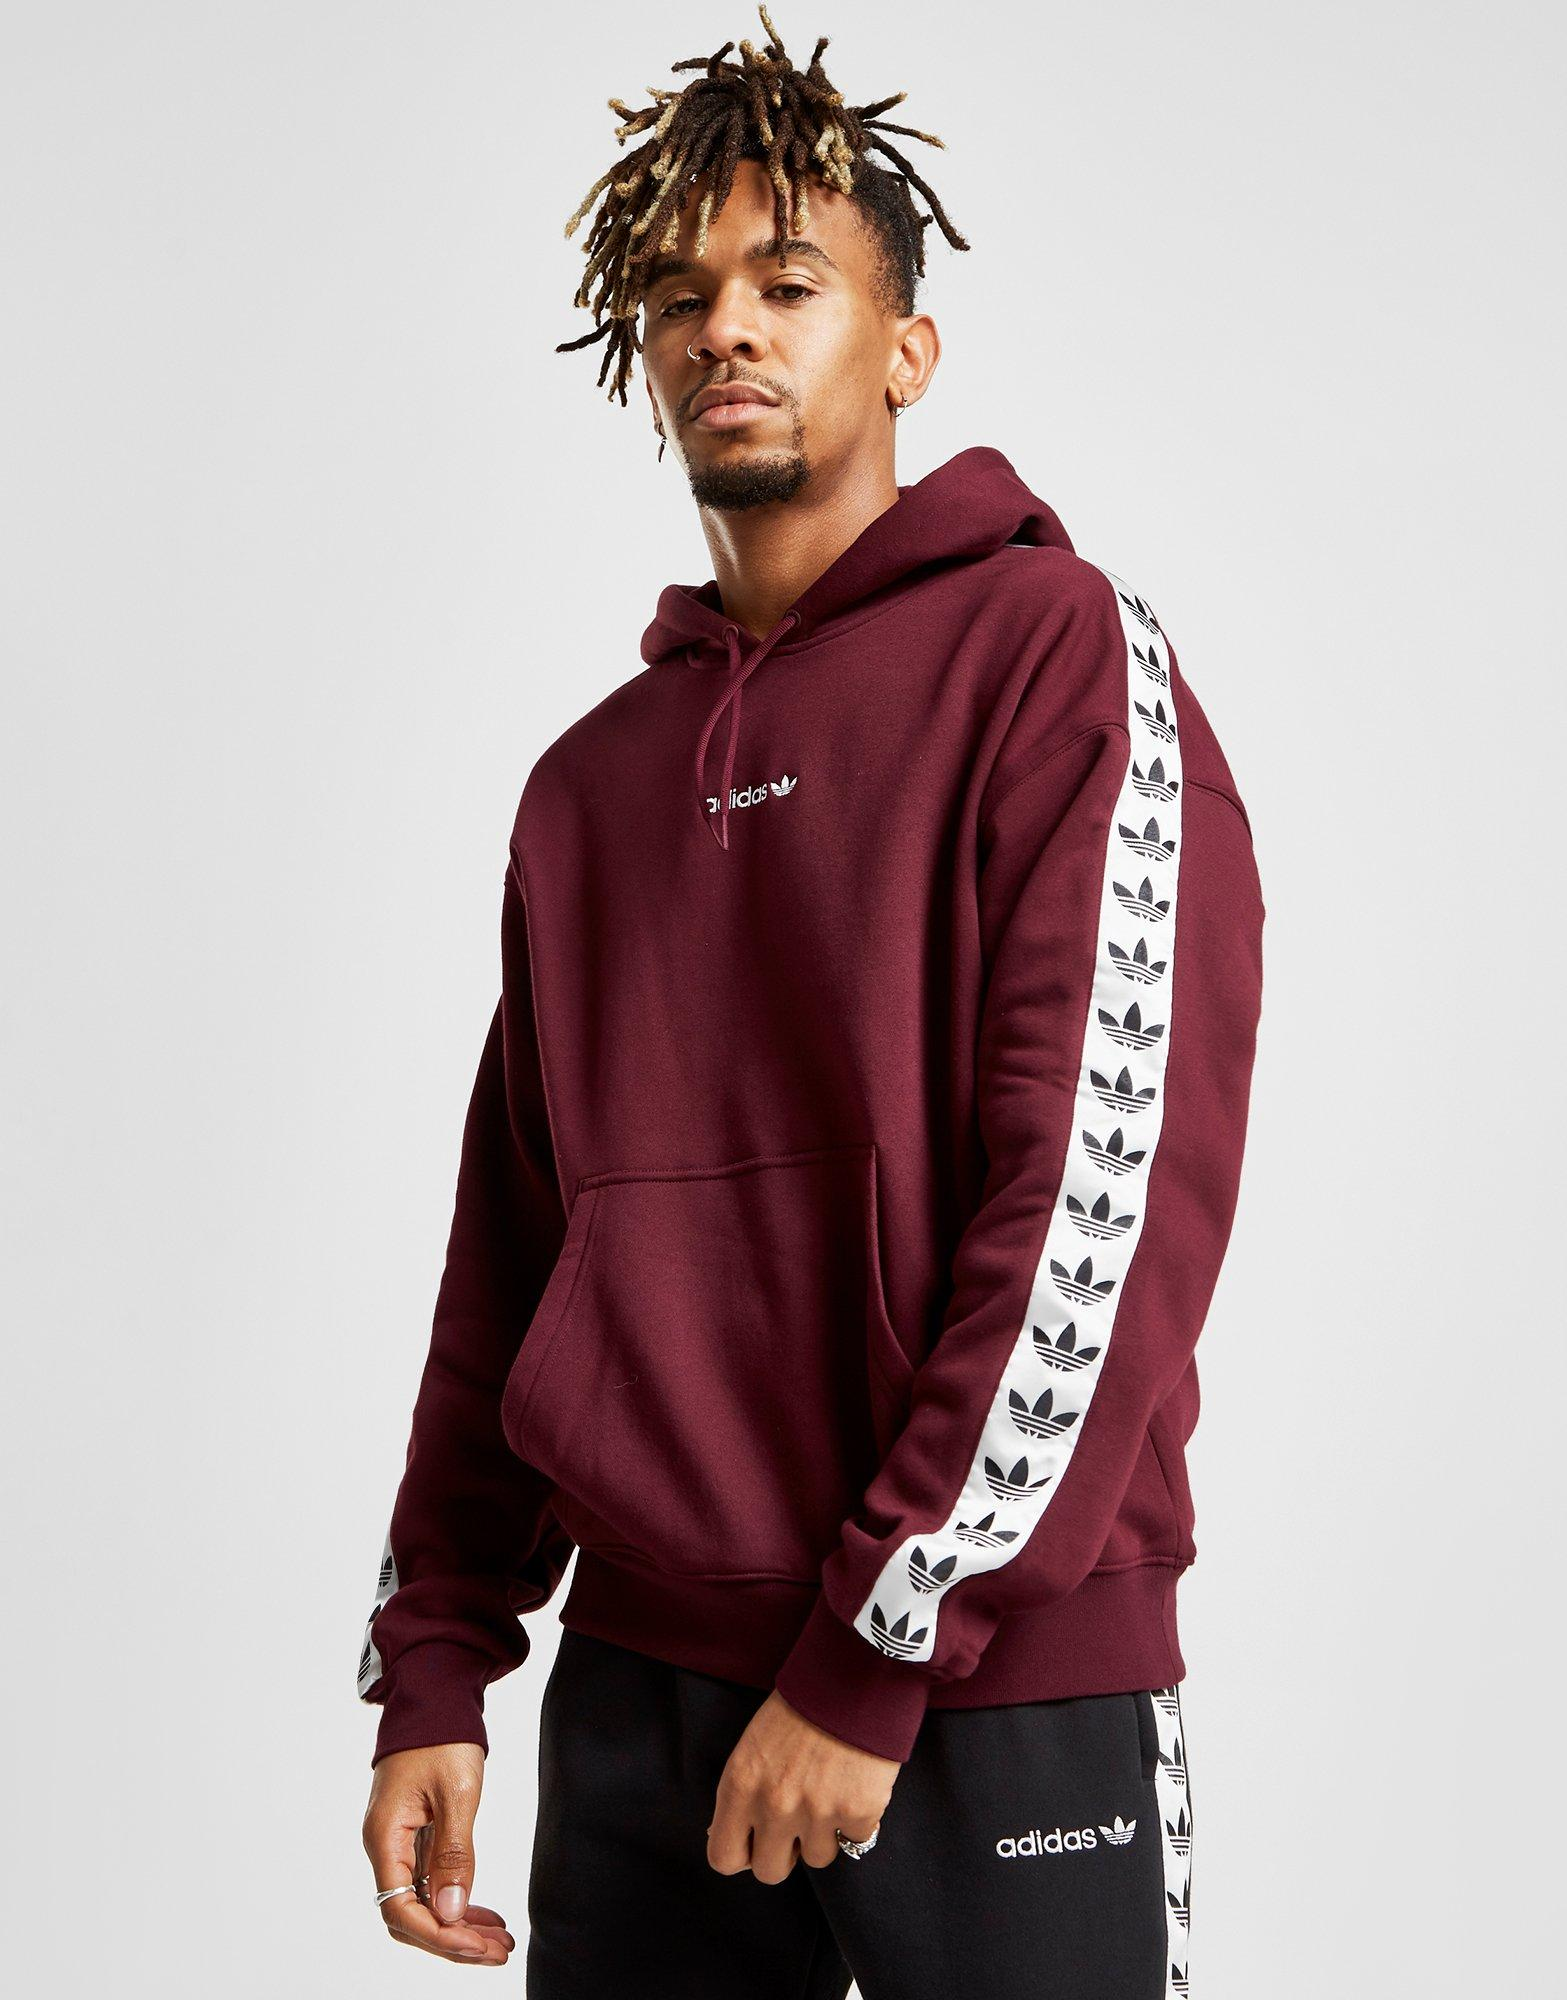 TNT Tape Hoodie | Pull over, Vêtements homme, Adidas